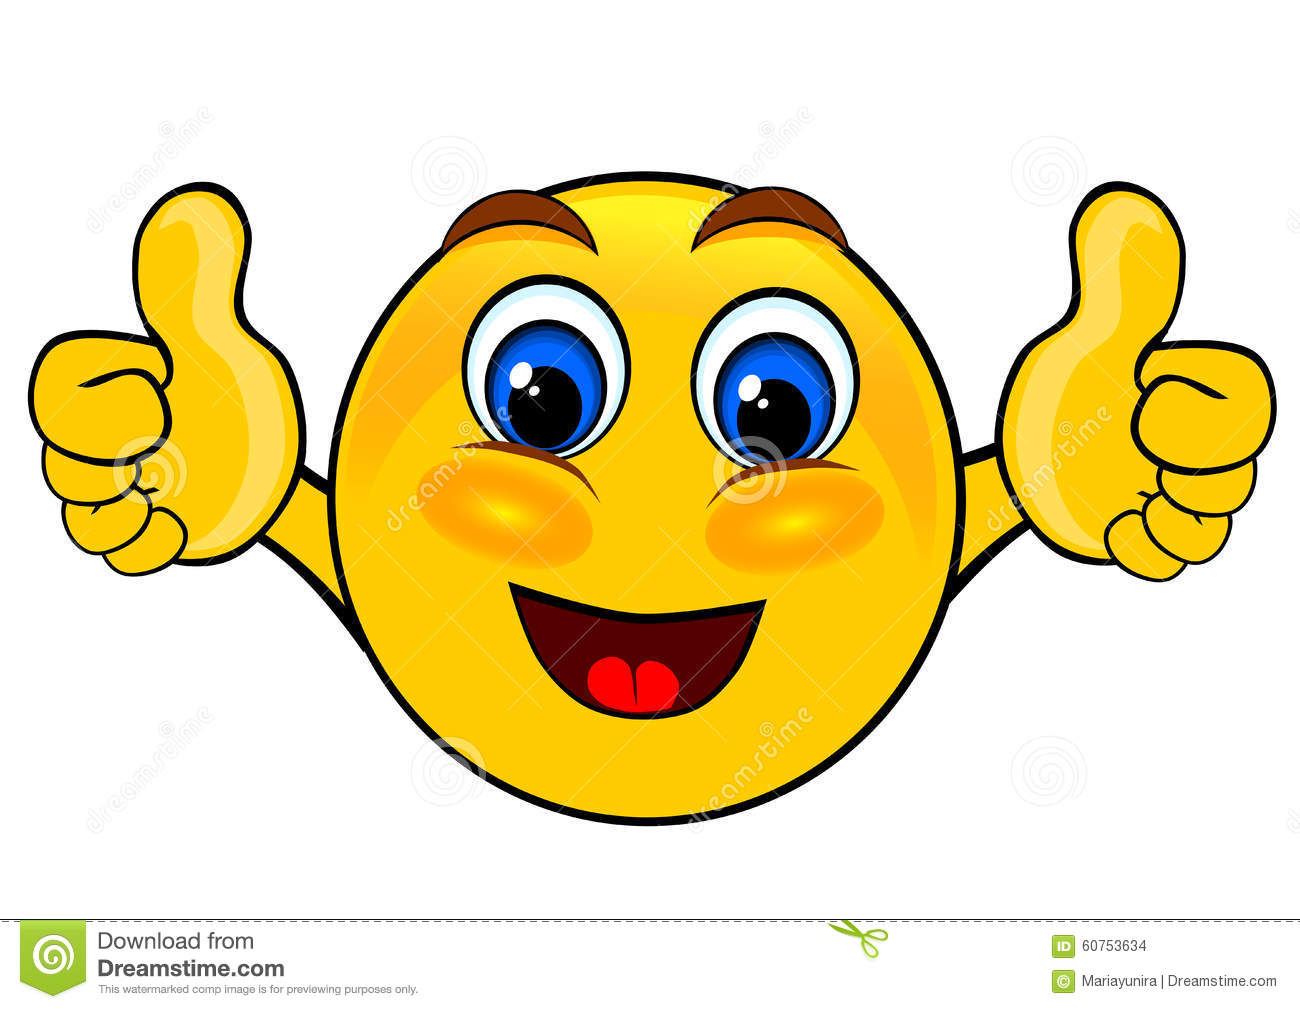 Smile Emoticons Thumbs Up Stock Illustration - Image: 60753634: www.dreamstime.com/stock-illustration-smile-emoticons-thumbs-up...